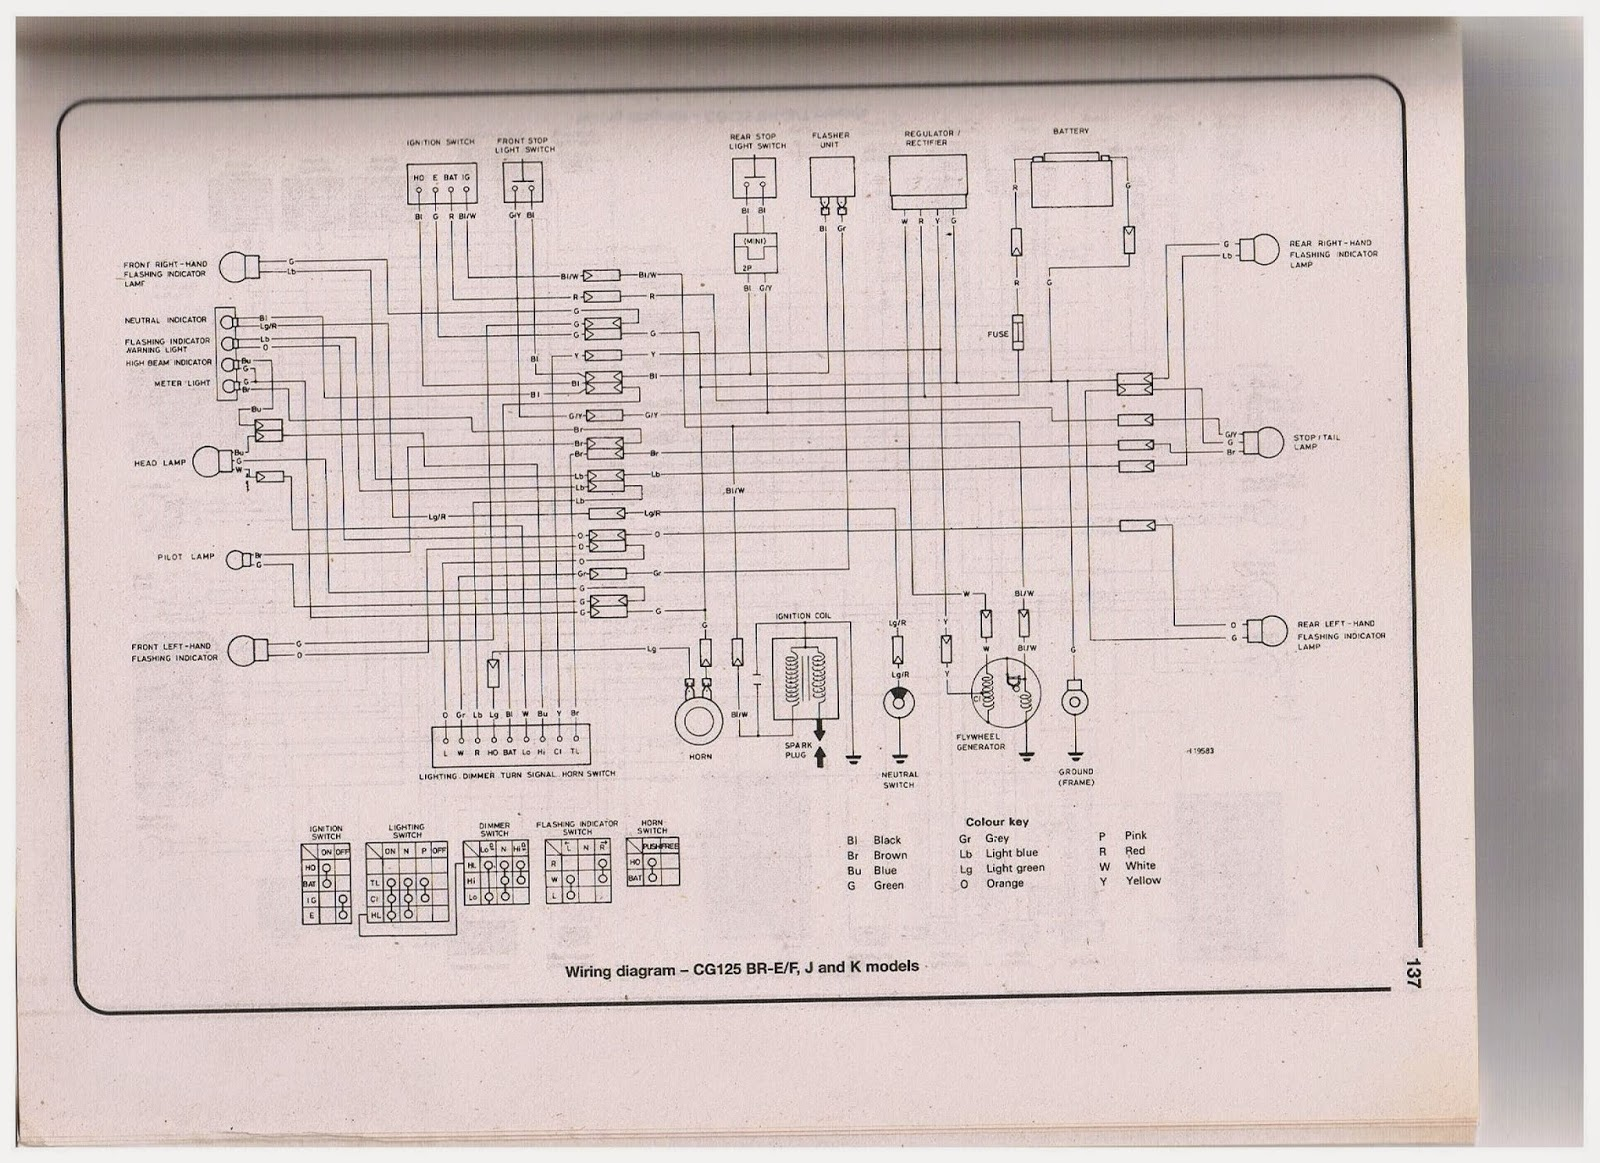 002 125cc motorcycle wiring diagram wiring library